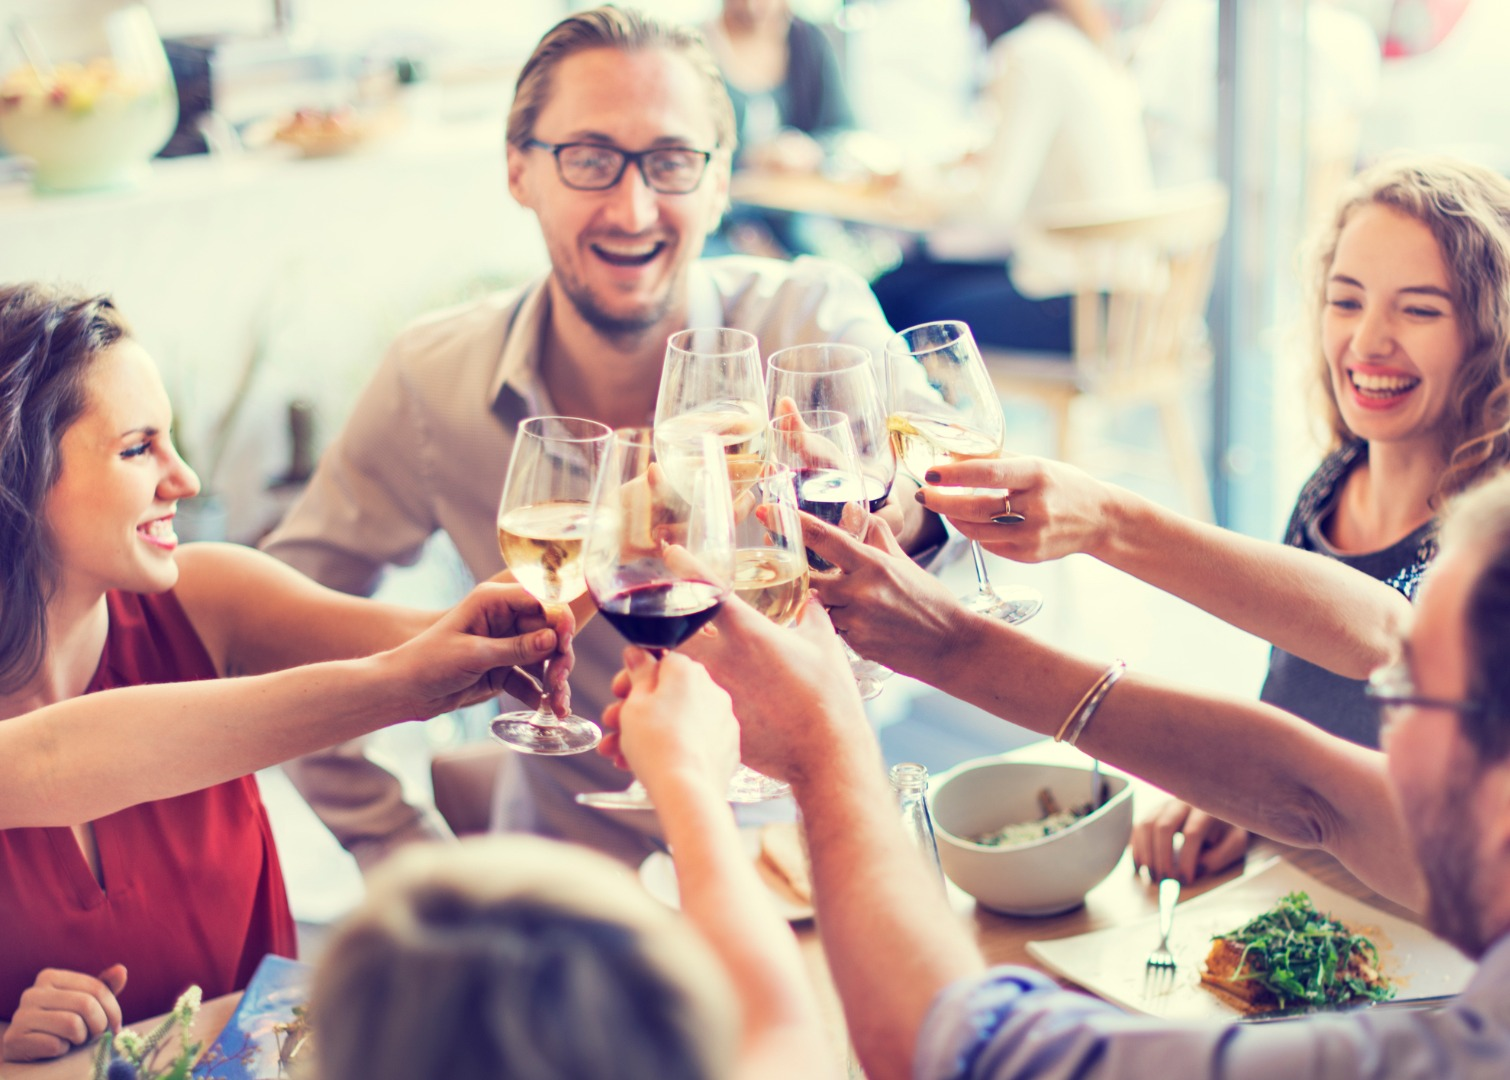 Low-level alcohol consumption can help clean the brain